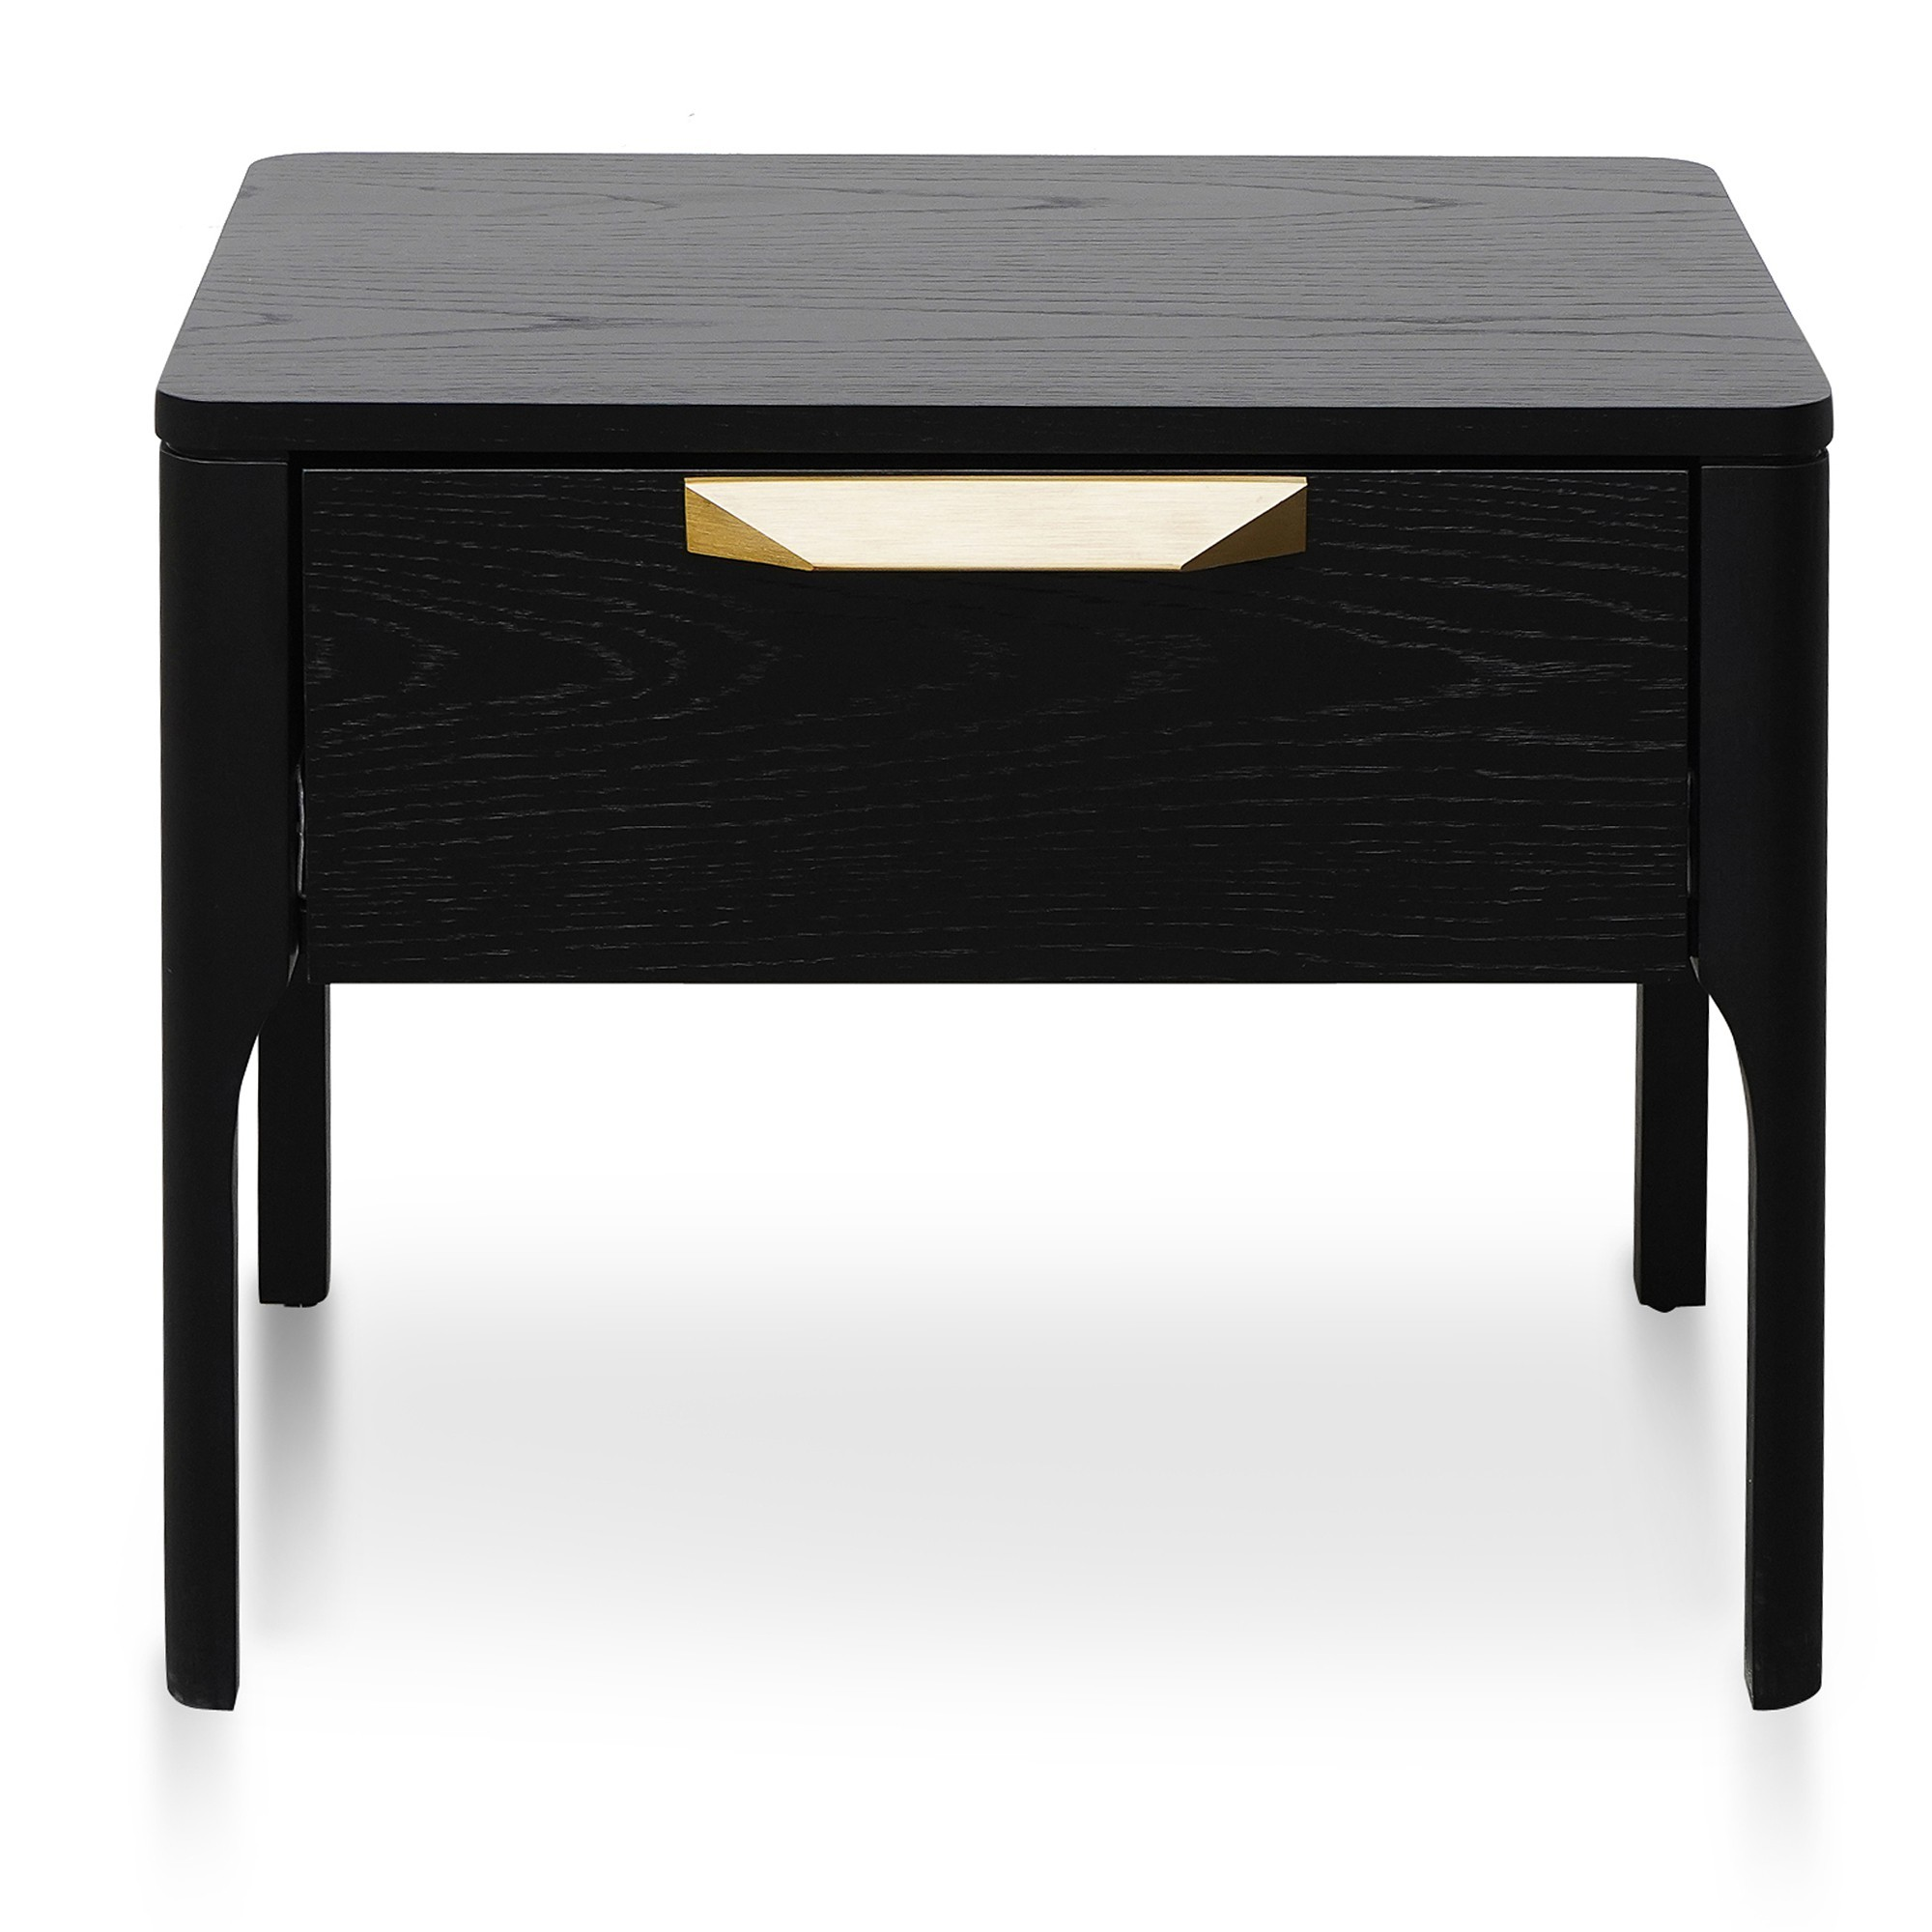 Rognan Wooden Bedside Table, Black